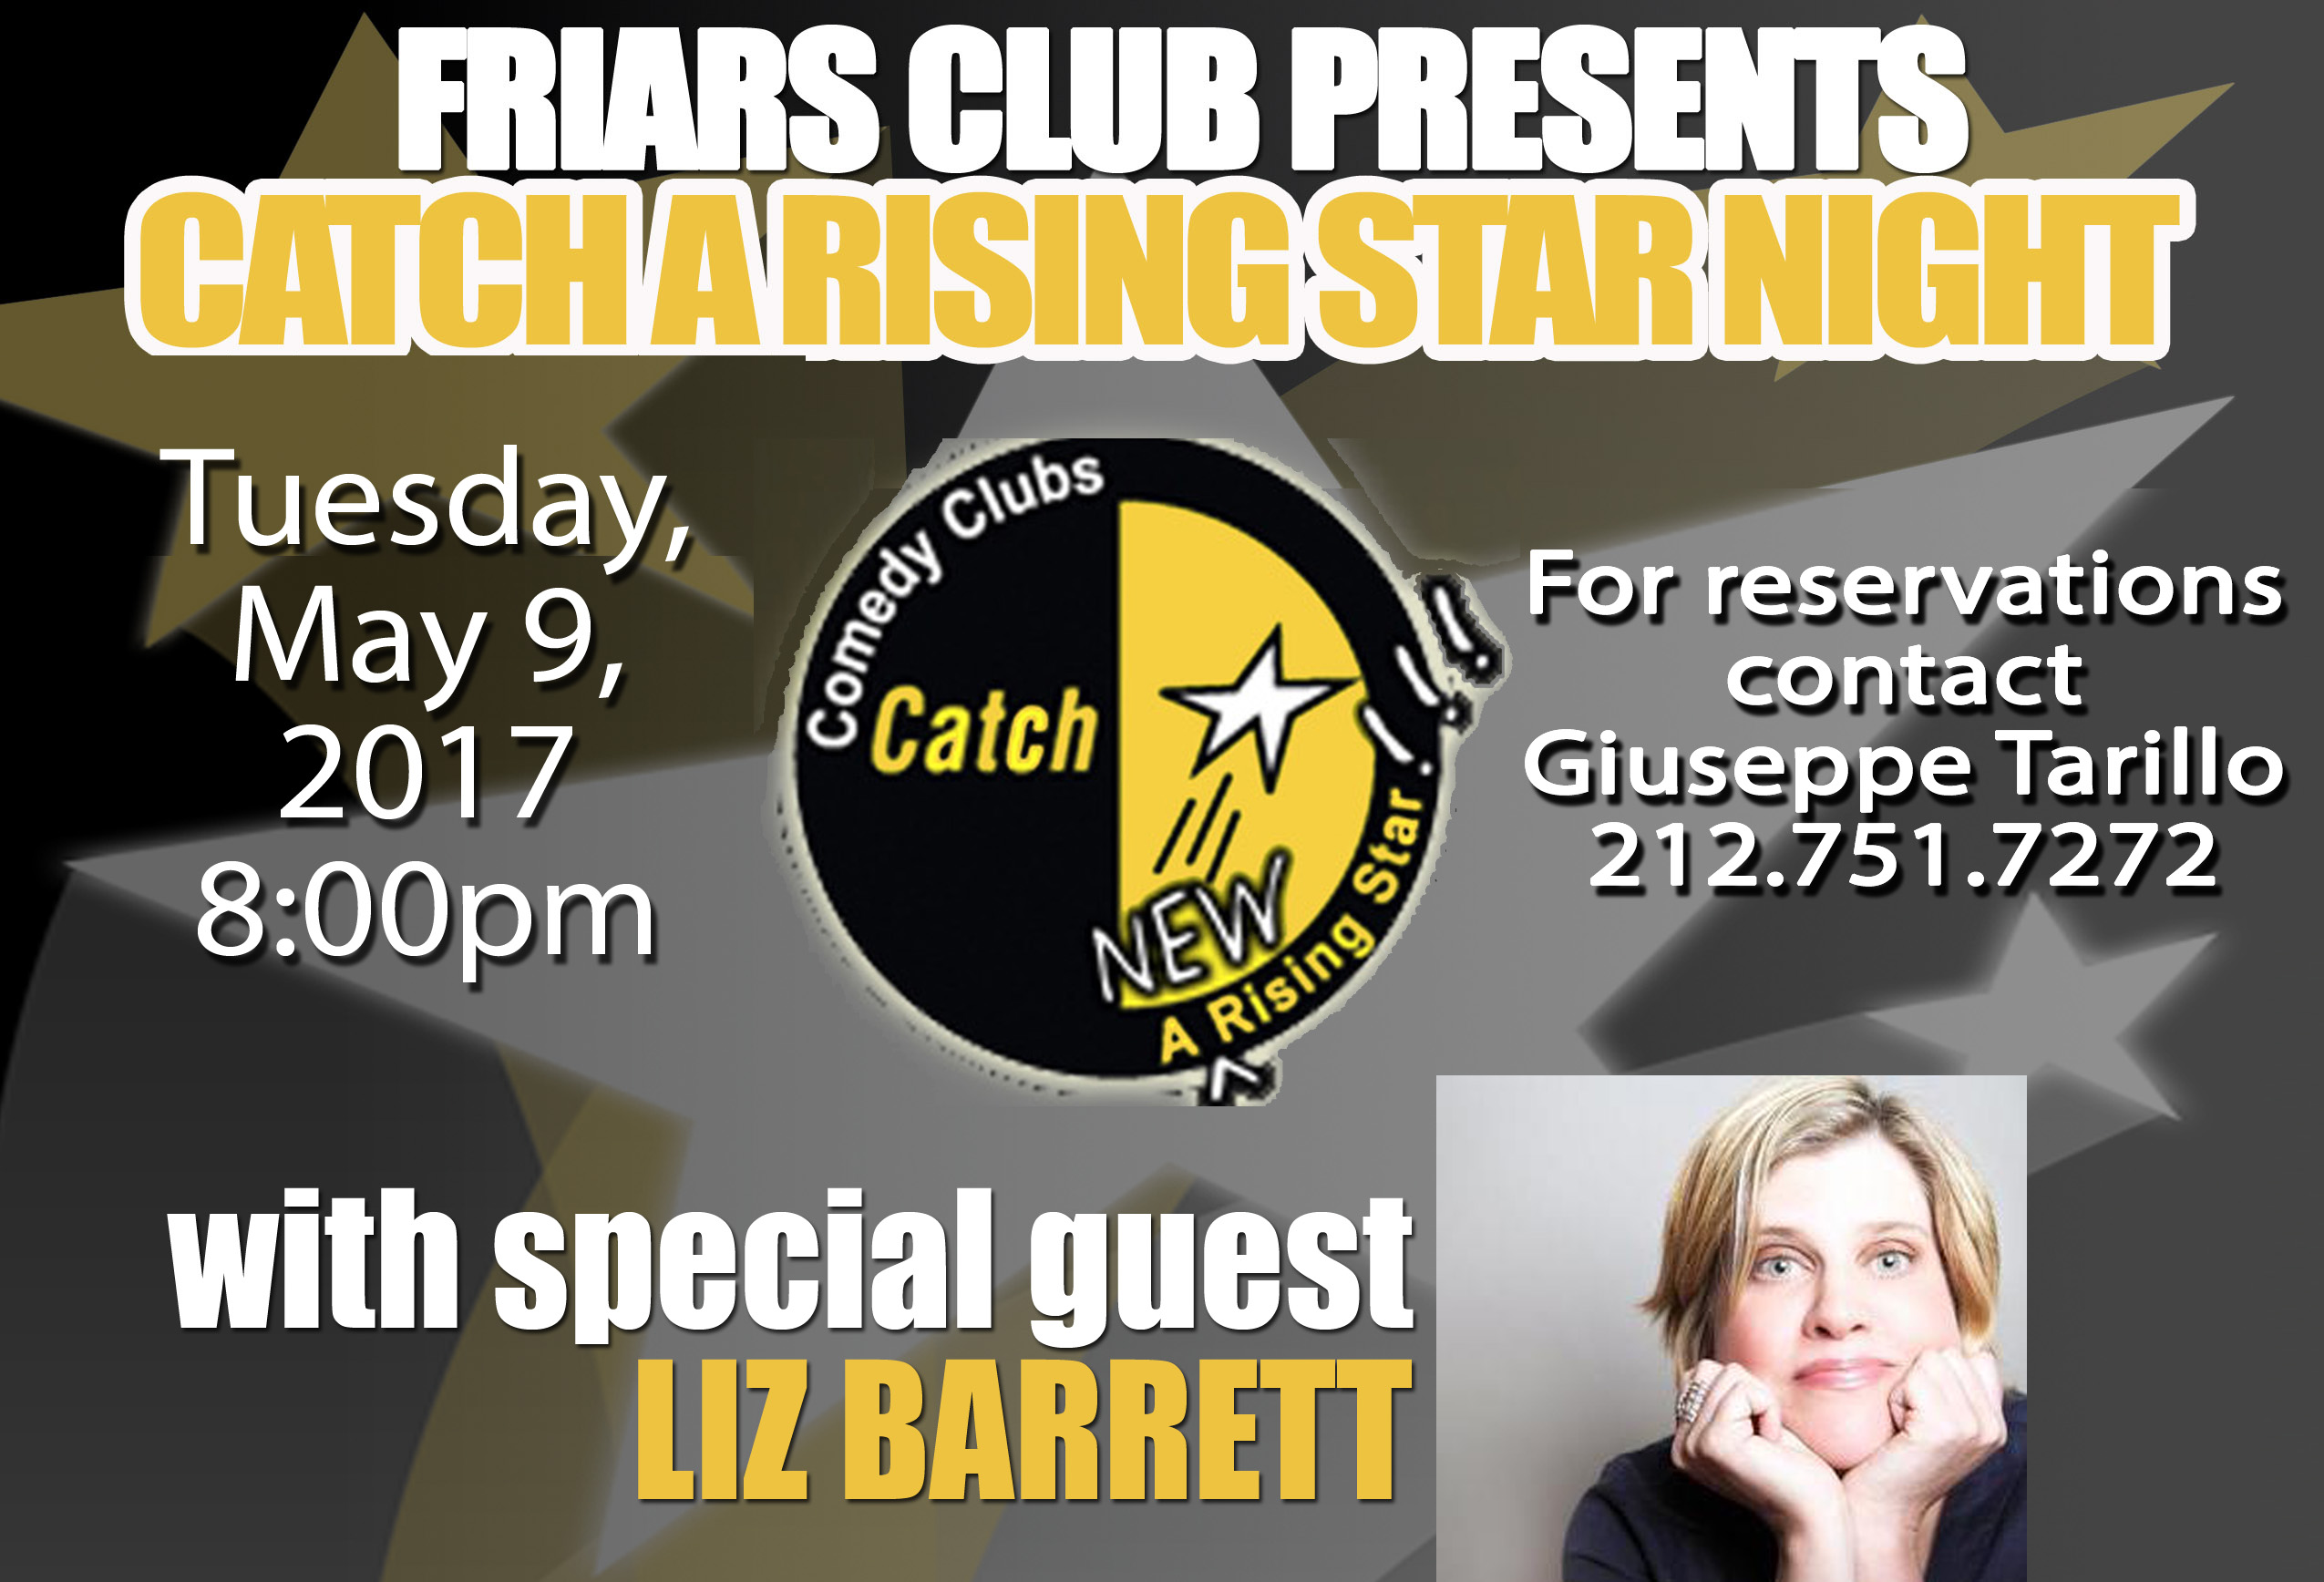 Catch A NEW Rising Star night with Liz Barrett